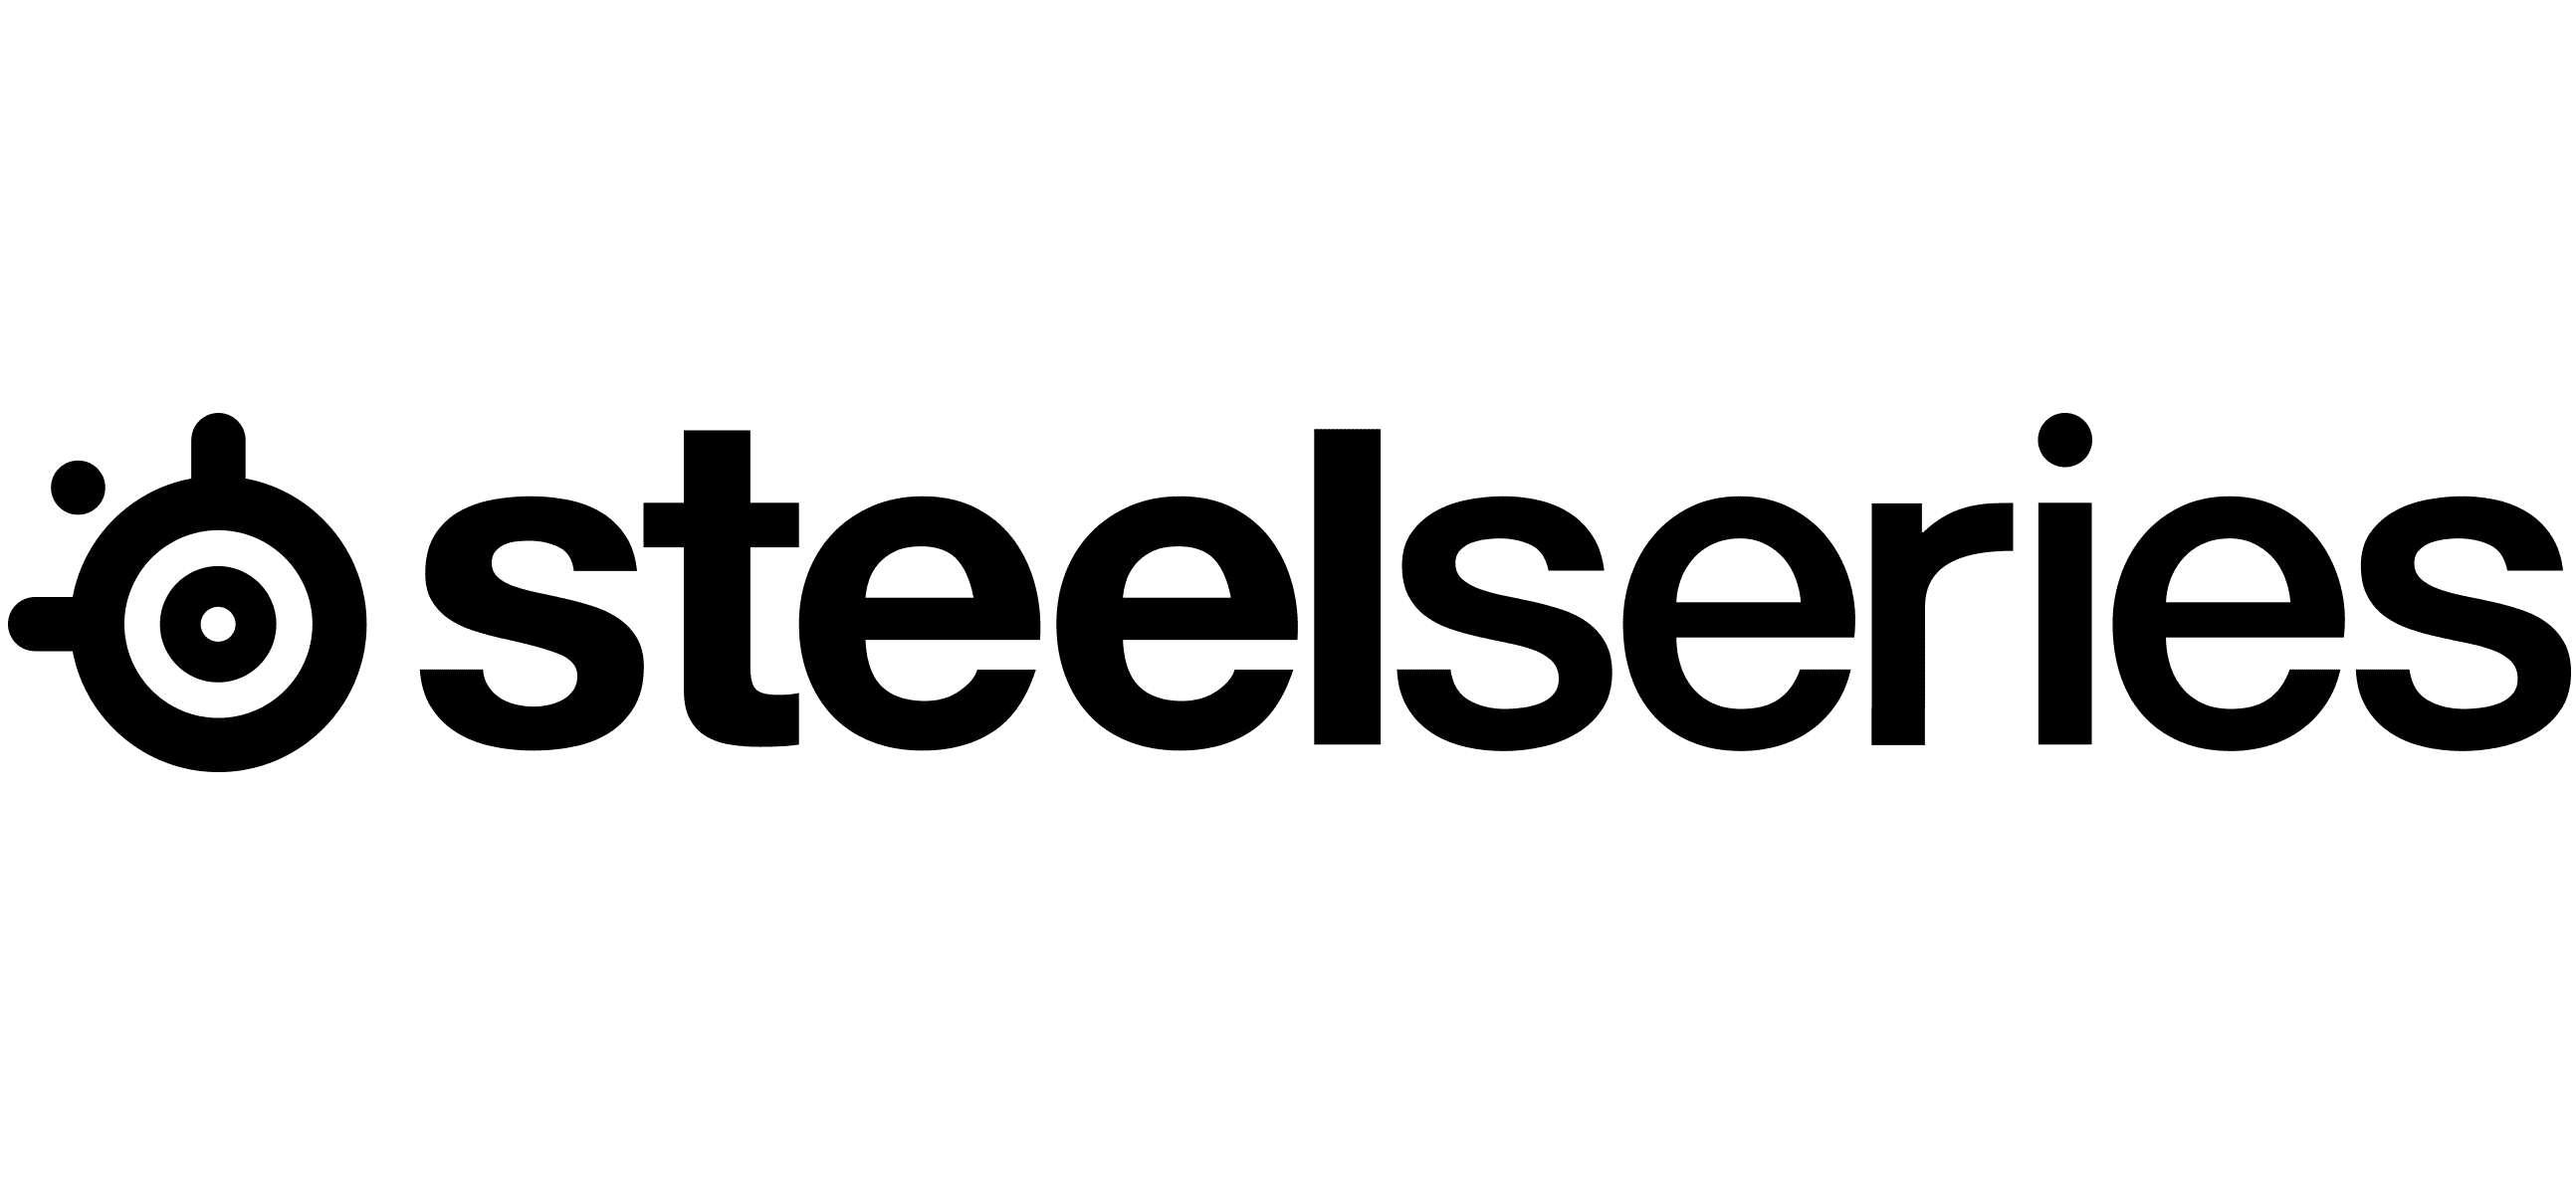 Steelseries logo and symbol, meaning, history, PNG